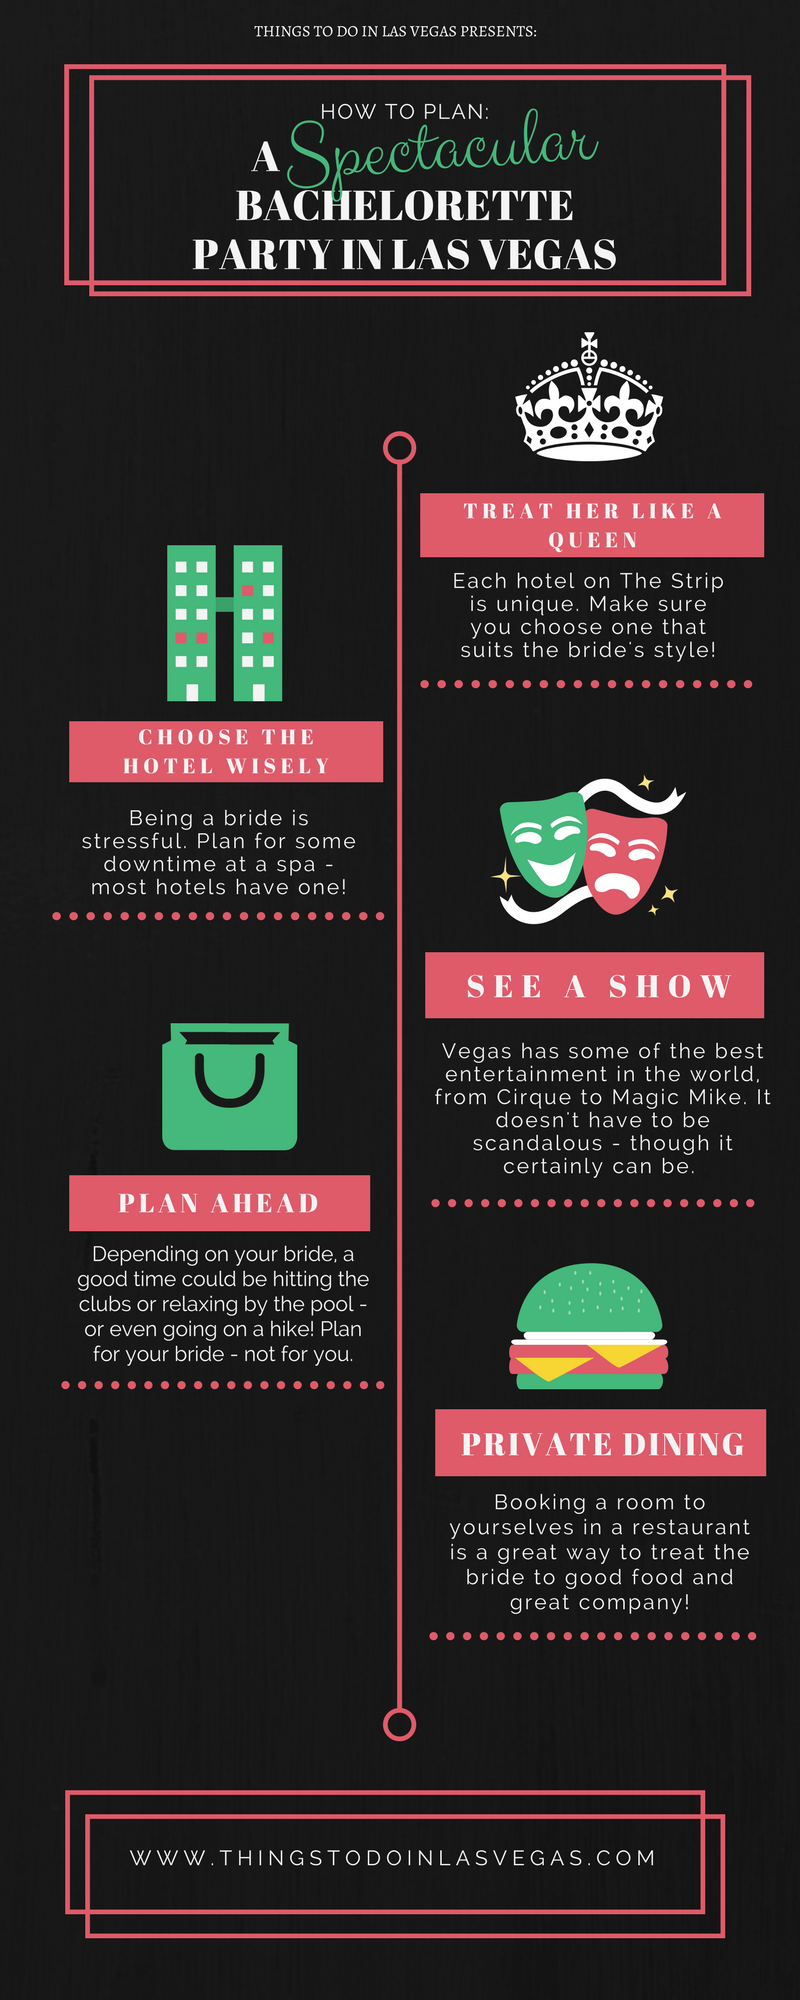 Tips For Planning A Spectacular Bachelorette Party In Las Vegas